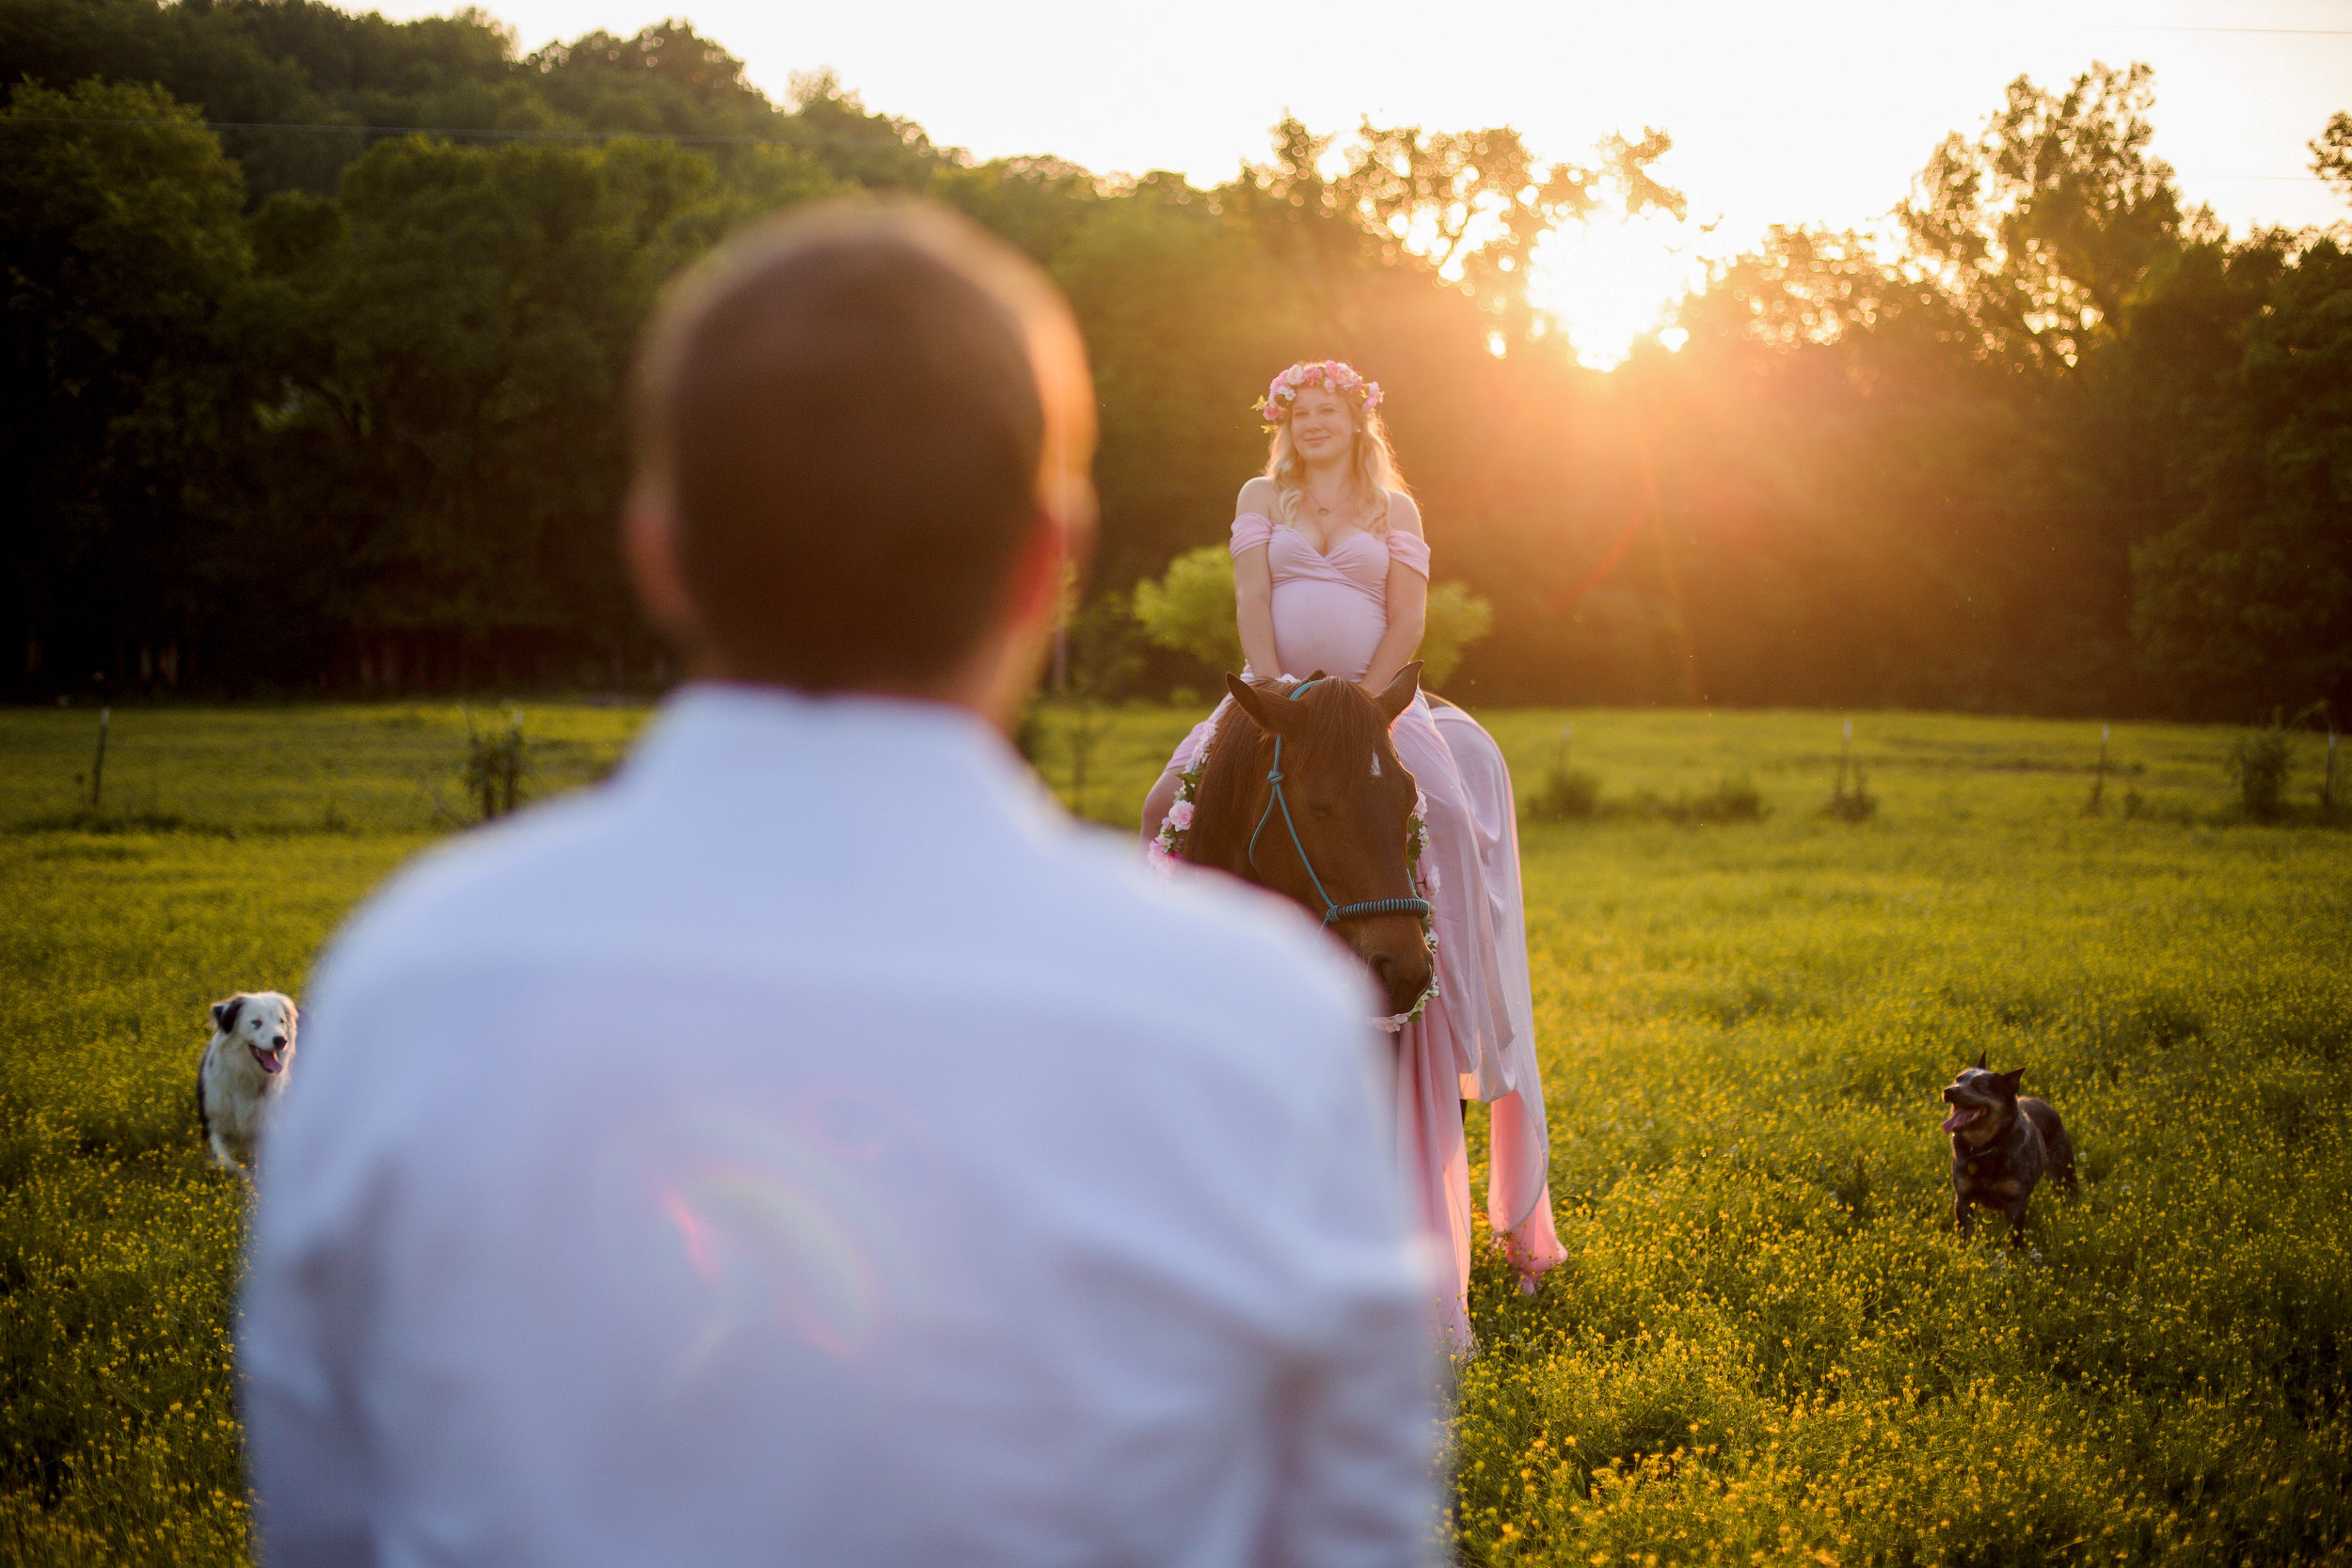 Savanna & Terry Maternity Session - Nashville Newborn Photographer - Chelsea Meadows Photography (52).jpg